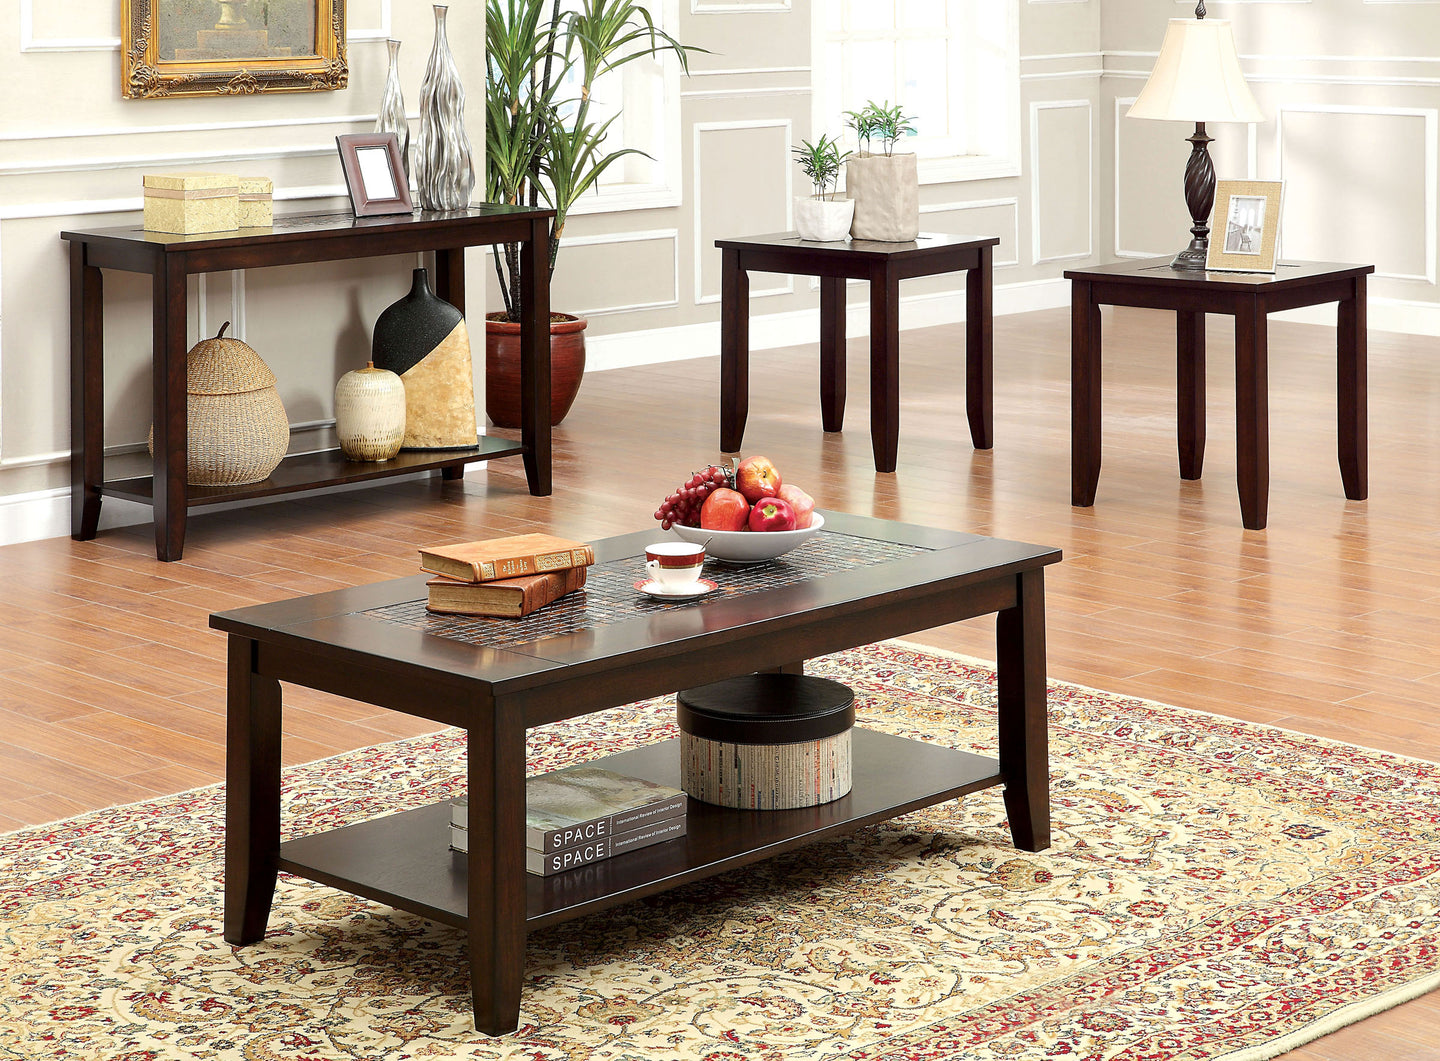 Furniture of America Townsend III Dark Cherry Wood Finish 3 Piece Coffee Table Set